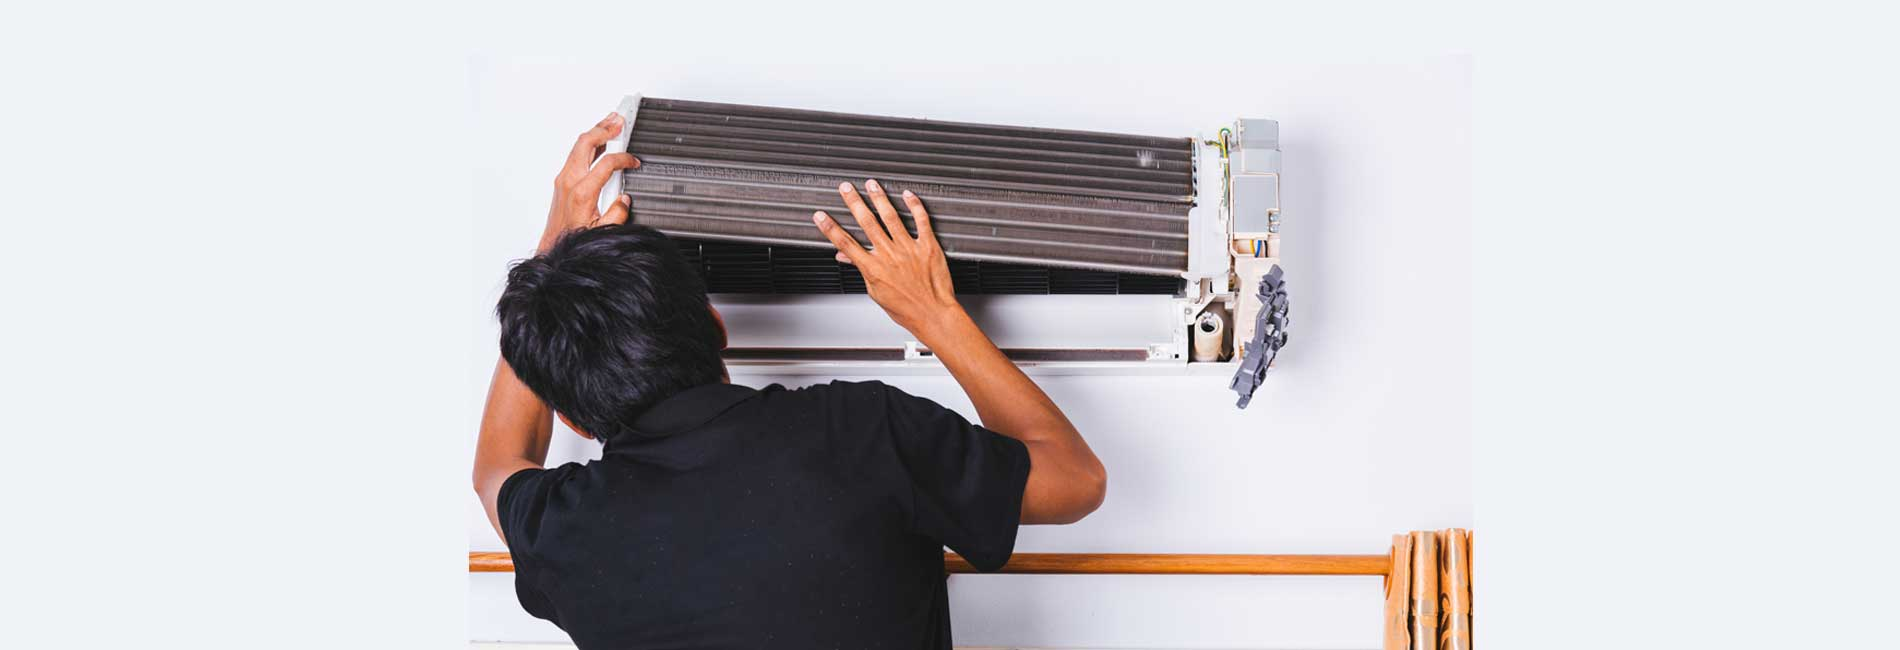 Split AC Uninstallation in Alwarpet